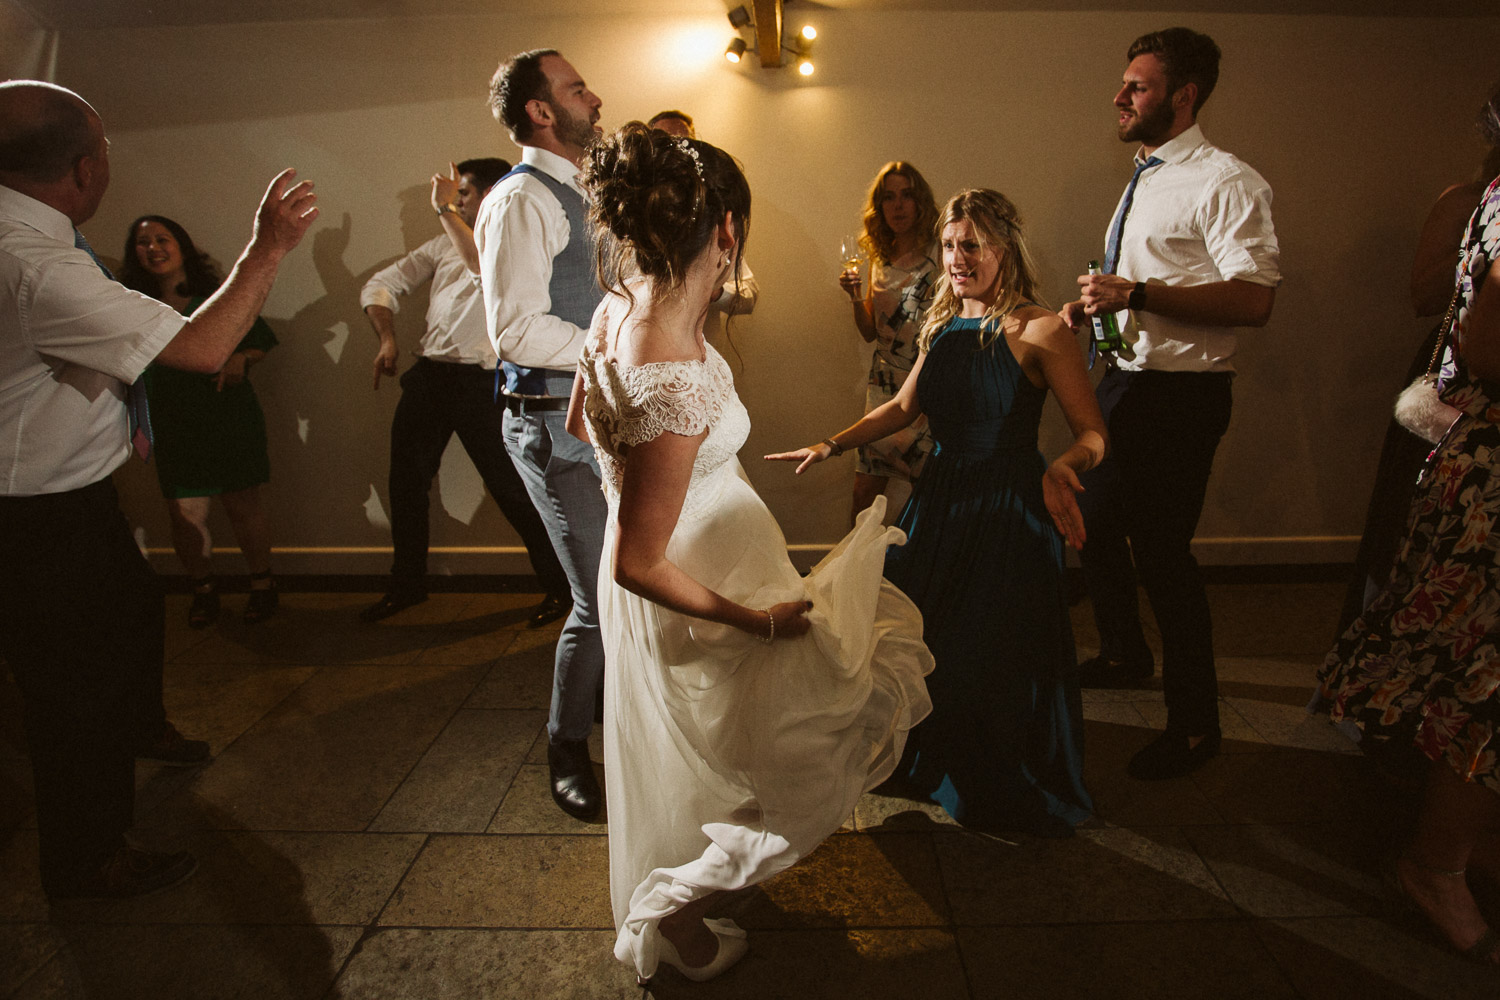 the bride and bridesmaids facing off during a dance